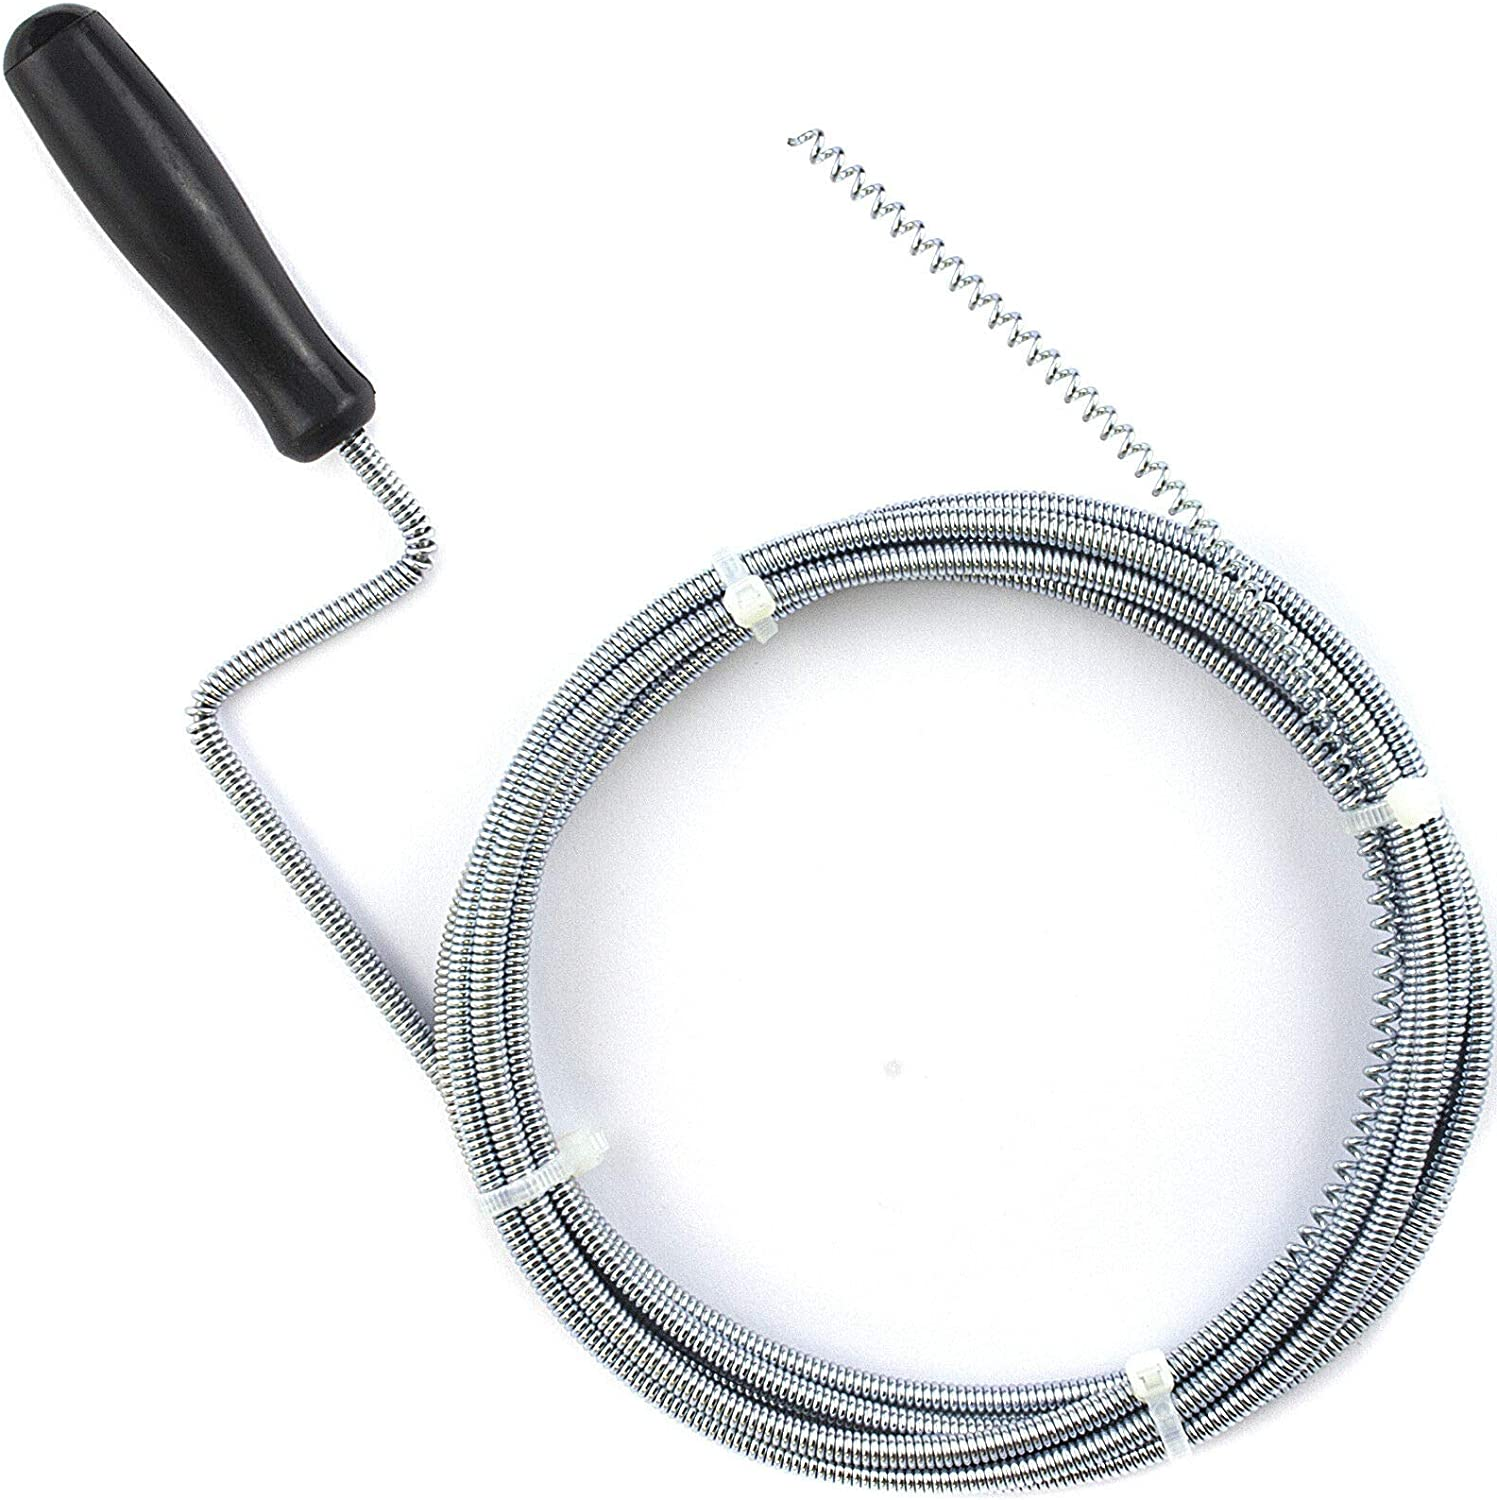 Drain Snake Clog Remover Hair Removal Cleaning Tool Plumbing Pipe Dredge Sewer